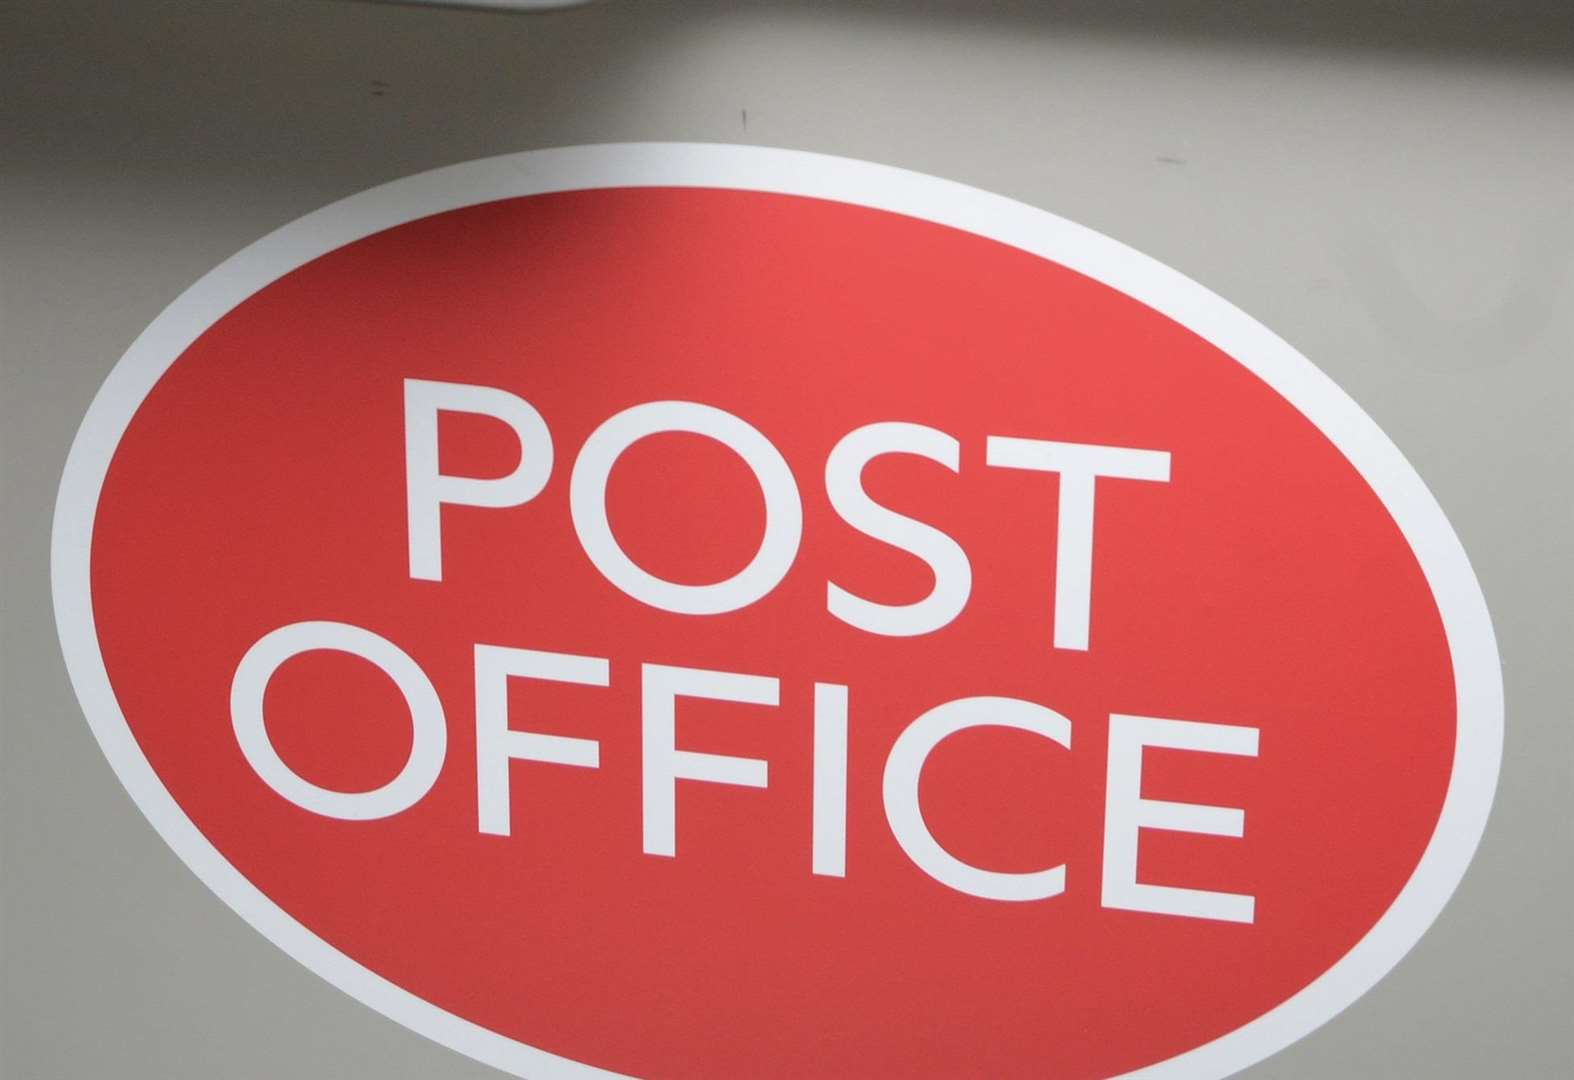 Anger as Downham Market post office closes suddenly